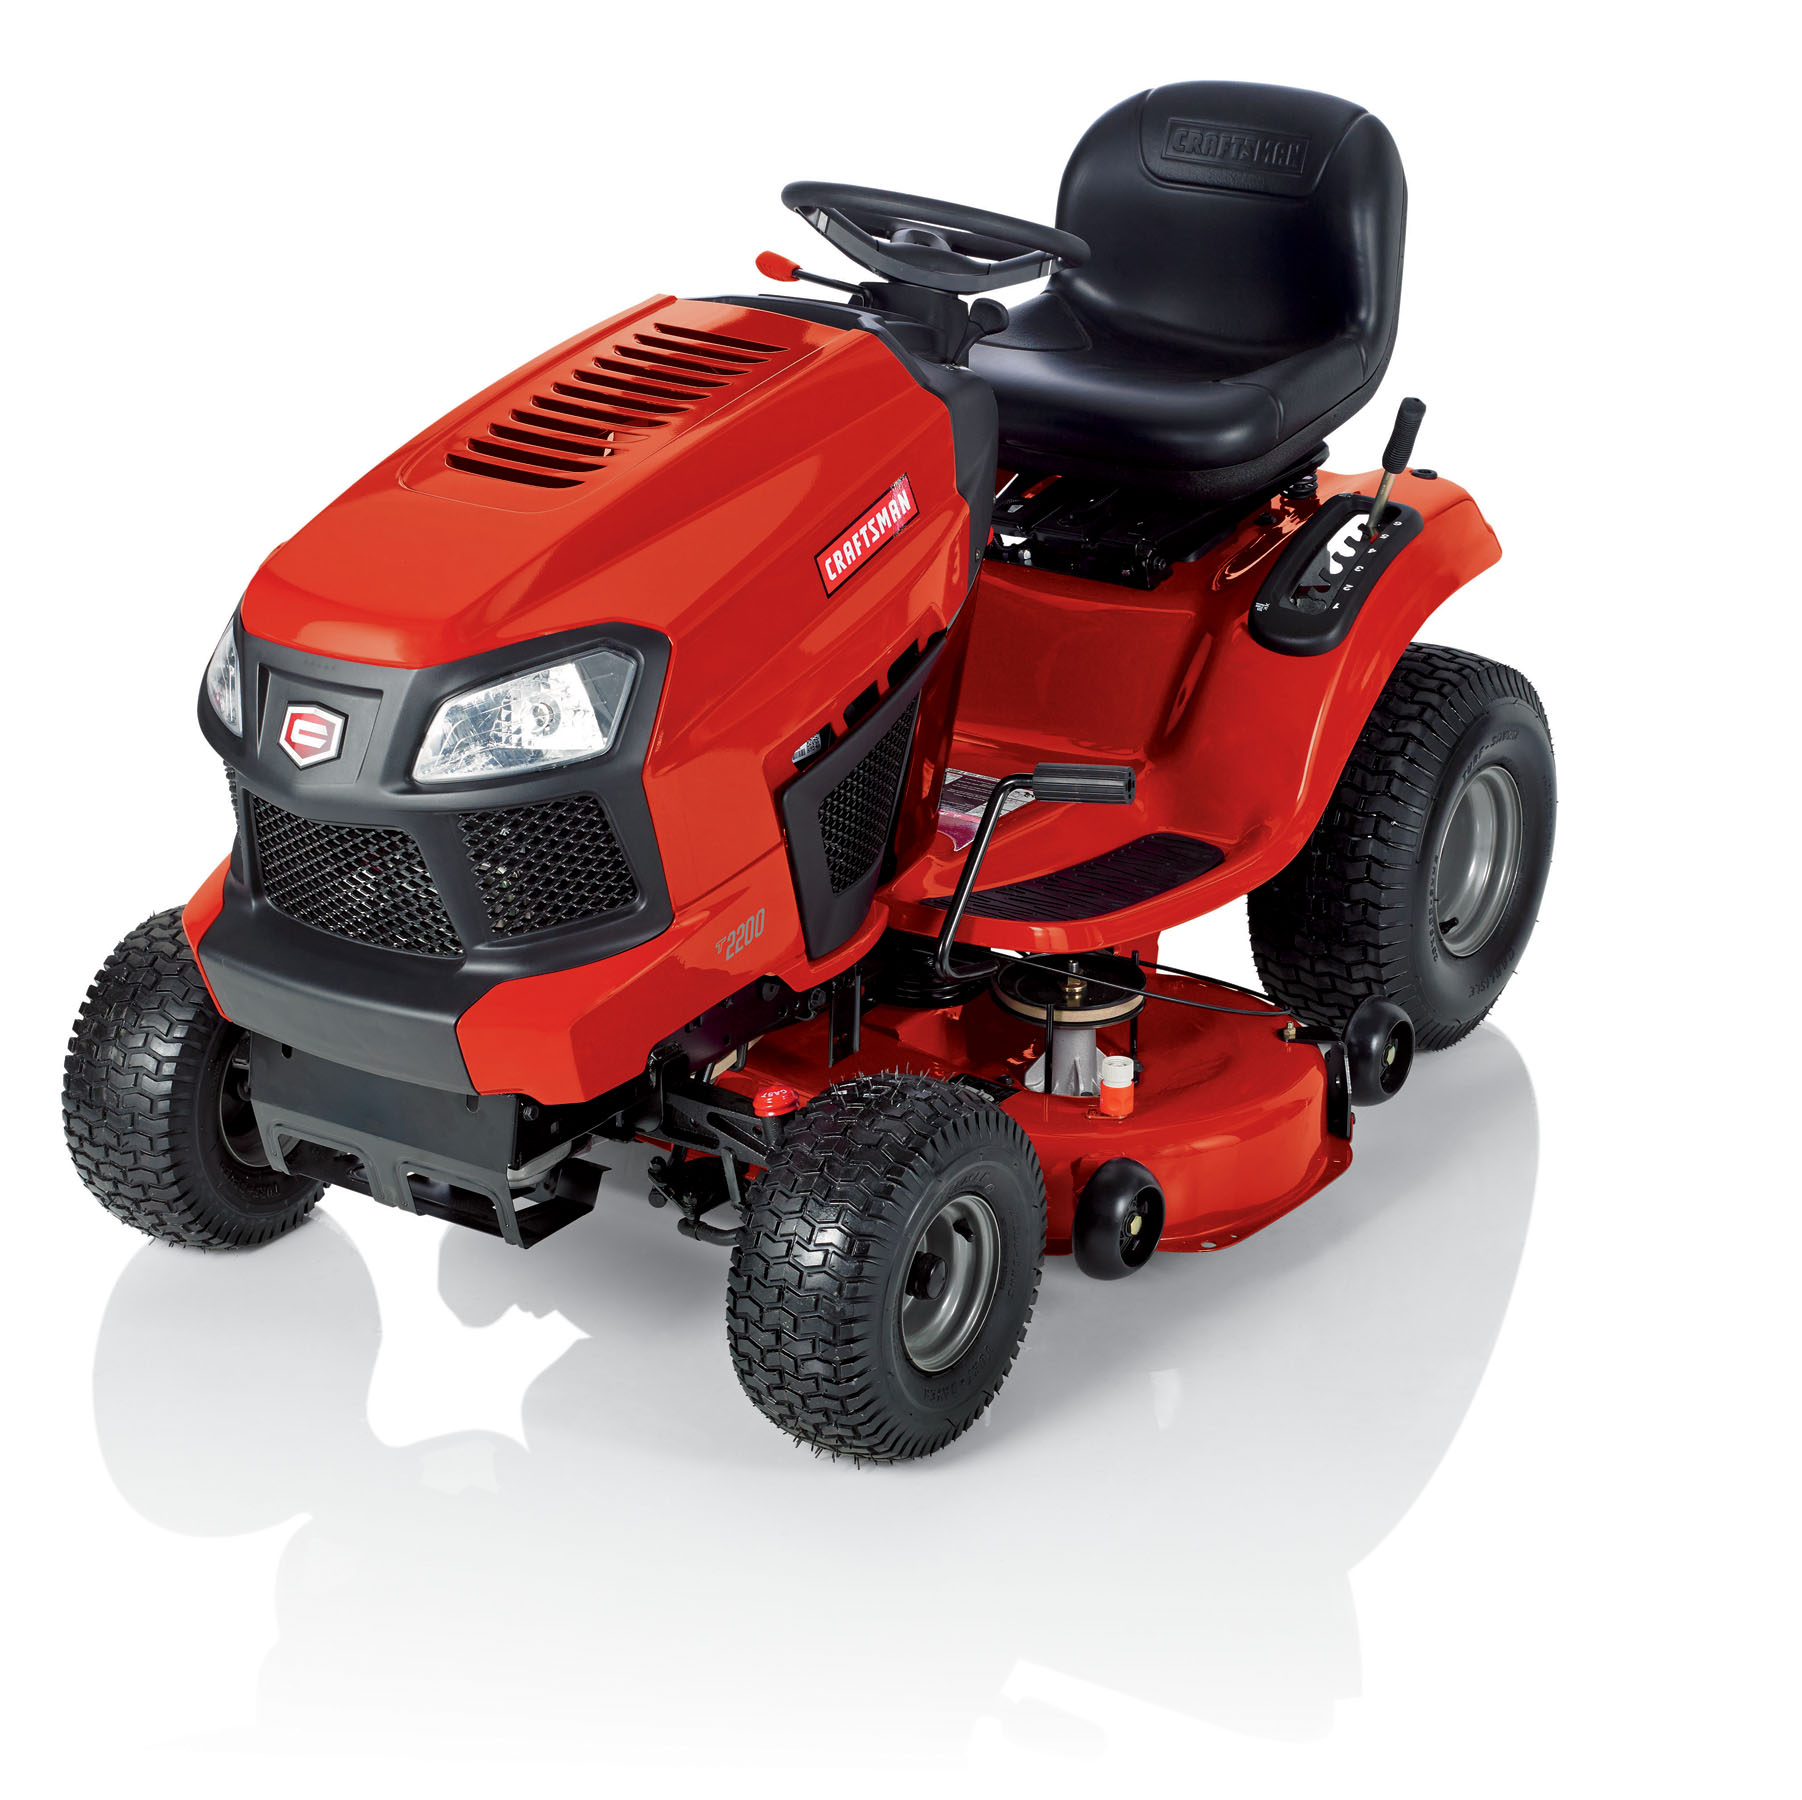 "Craftsman 42"" Auto 19HP Briggs & Stratton Turn Tight® Riding Mower"